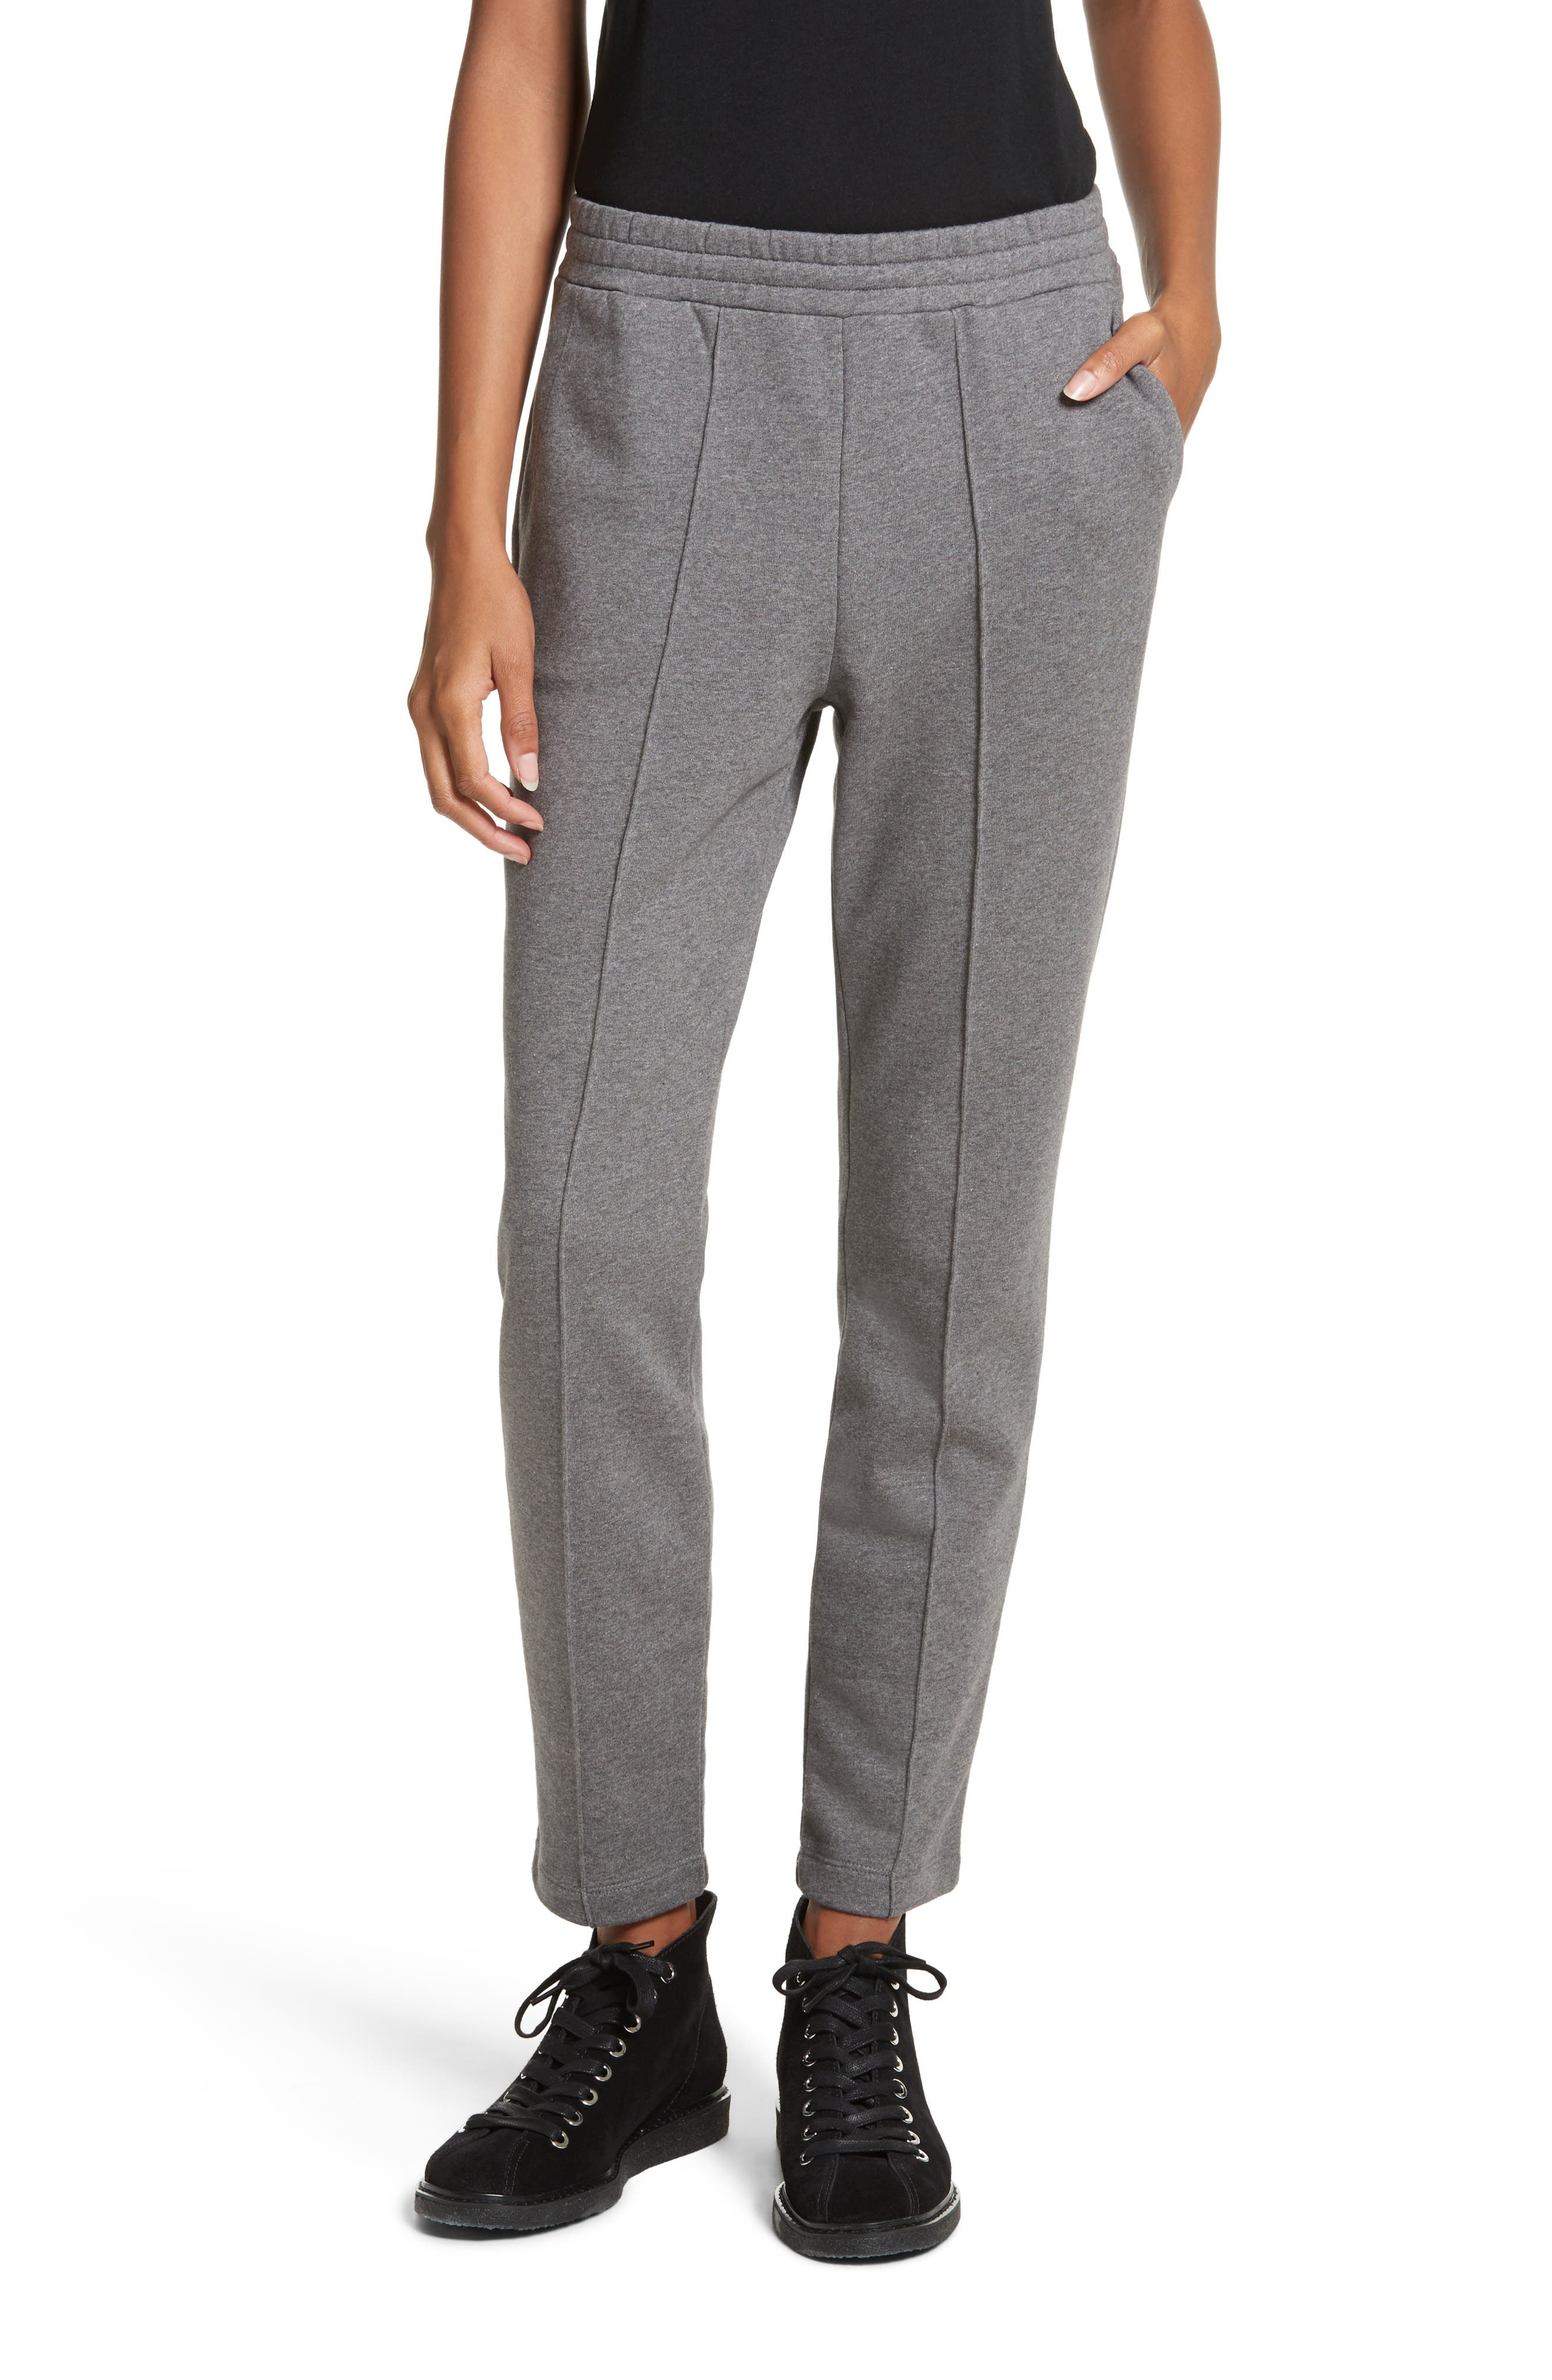 French Terry Leggings,                         Main,                         color, Heather Grey